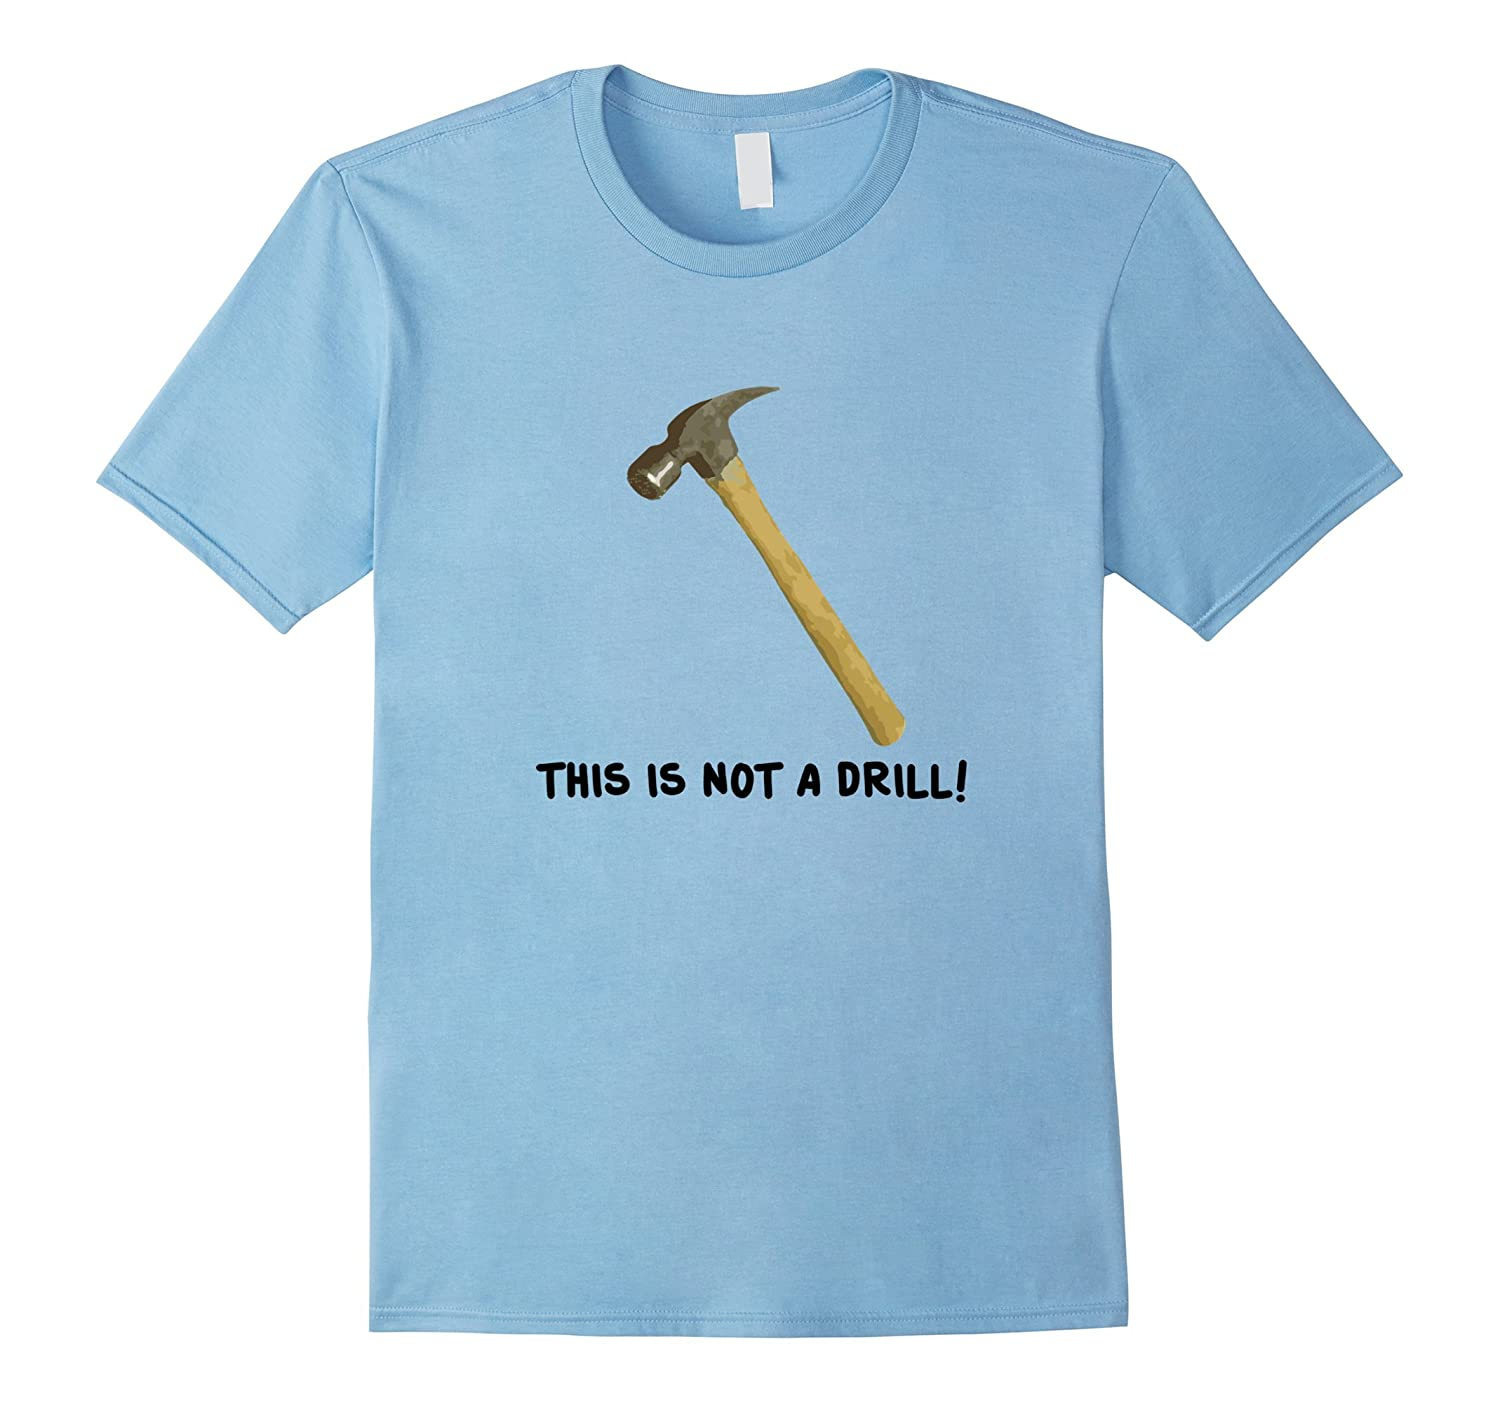 A Frayed Knot This Is Not a Drill Pun T-shirt